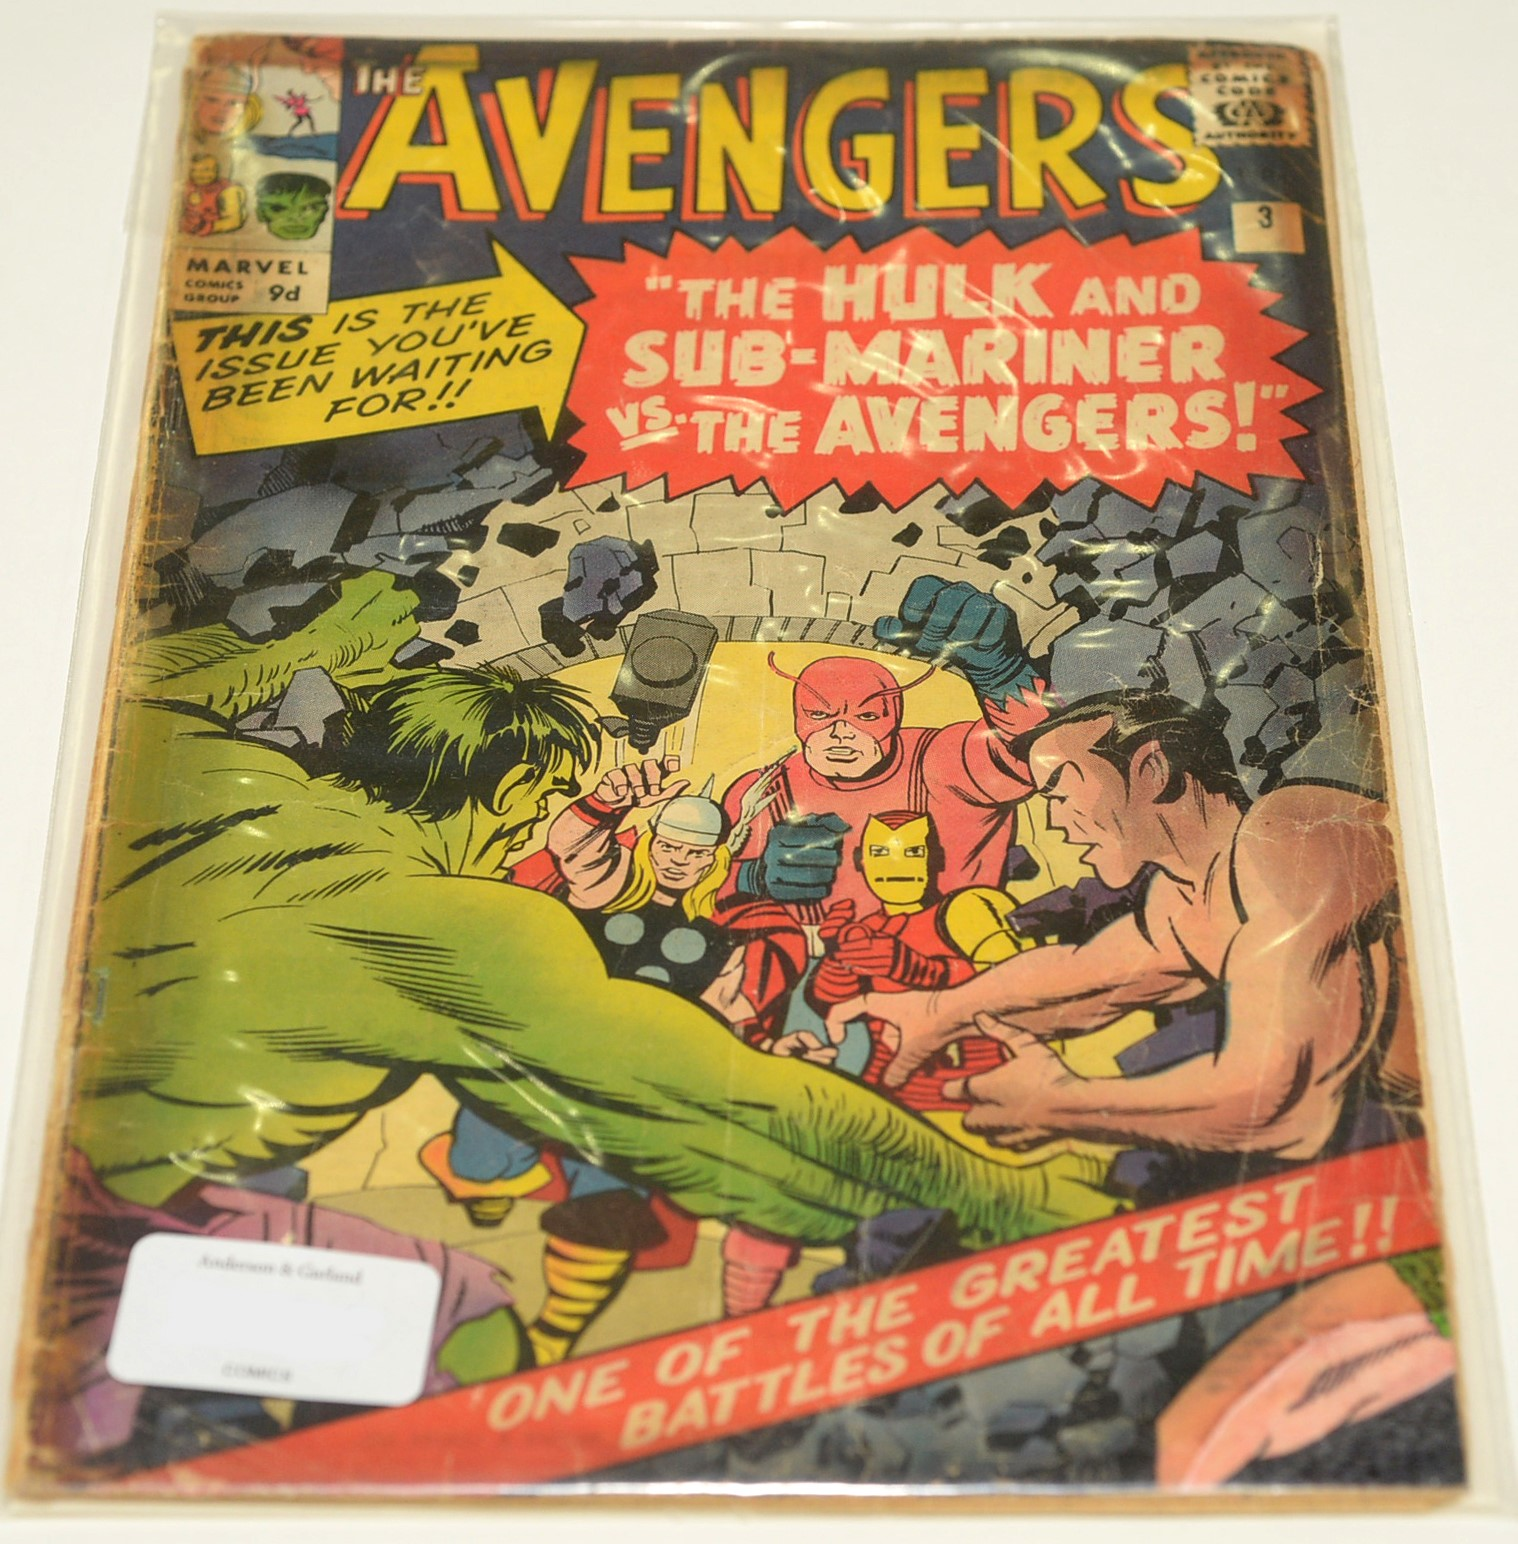 The Avengers No's. 3, 5, 11, 13, 14, 17 and 18 - Image 7 of 7